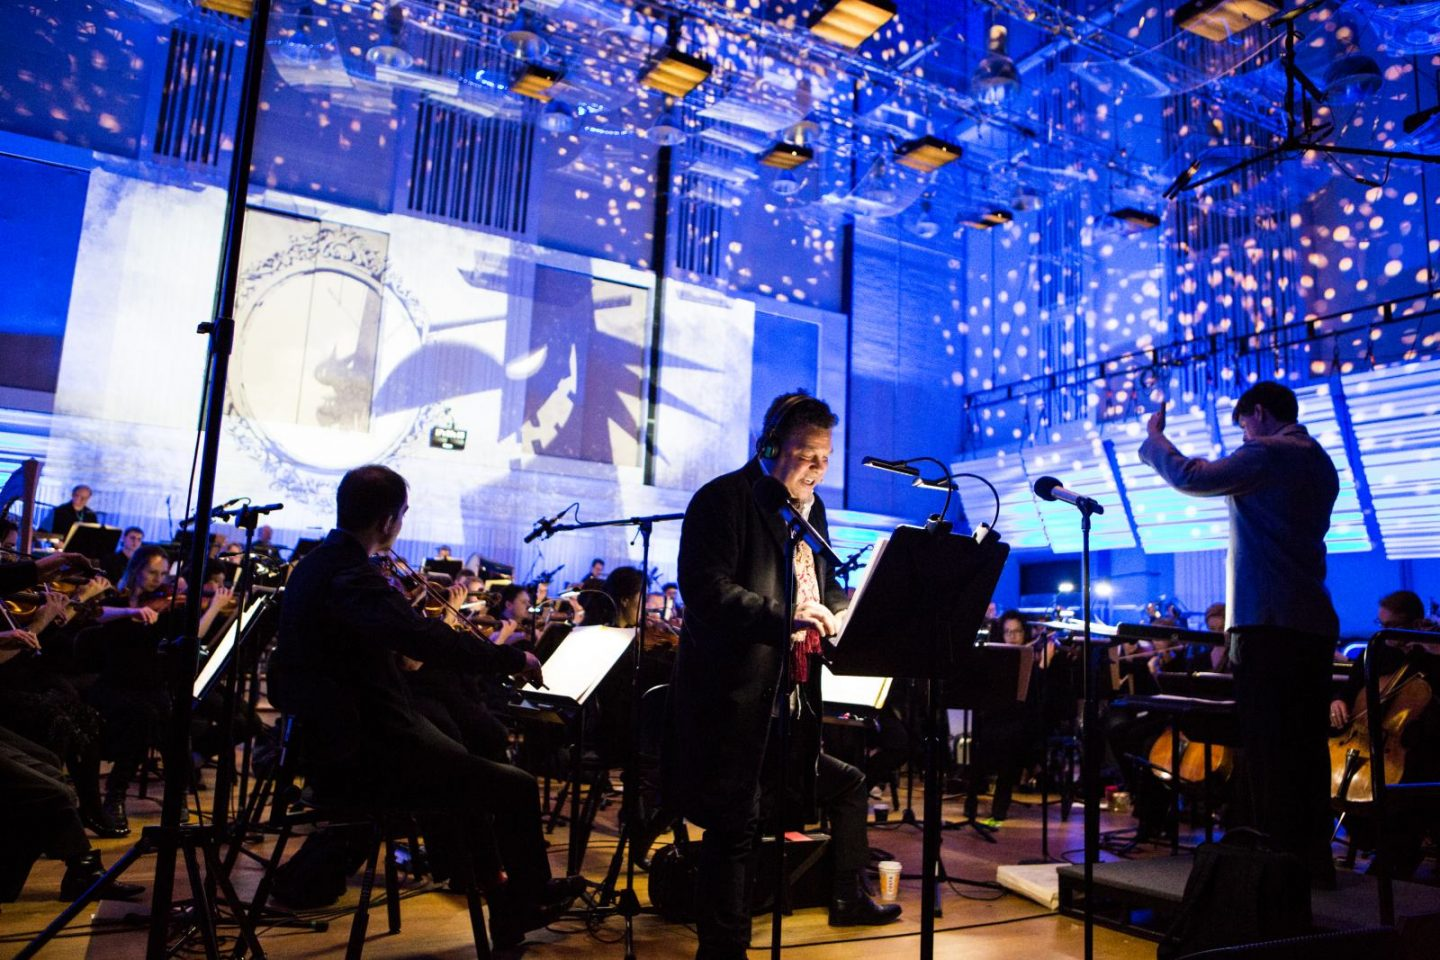 On Wed 5 December Craig Charles joins the BBC Philharmonic and  Curtis Stigers for BBC Philharmonic Christmas to perform the Scary Fairy Saves Christmas?